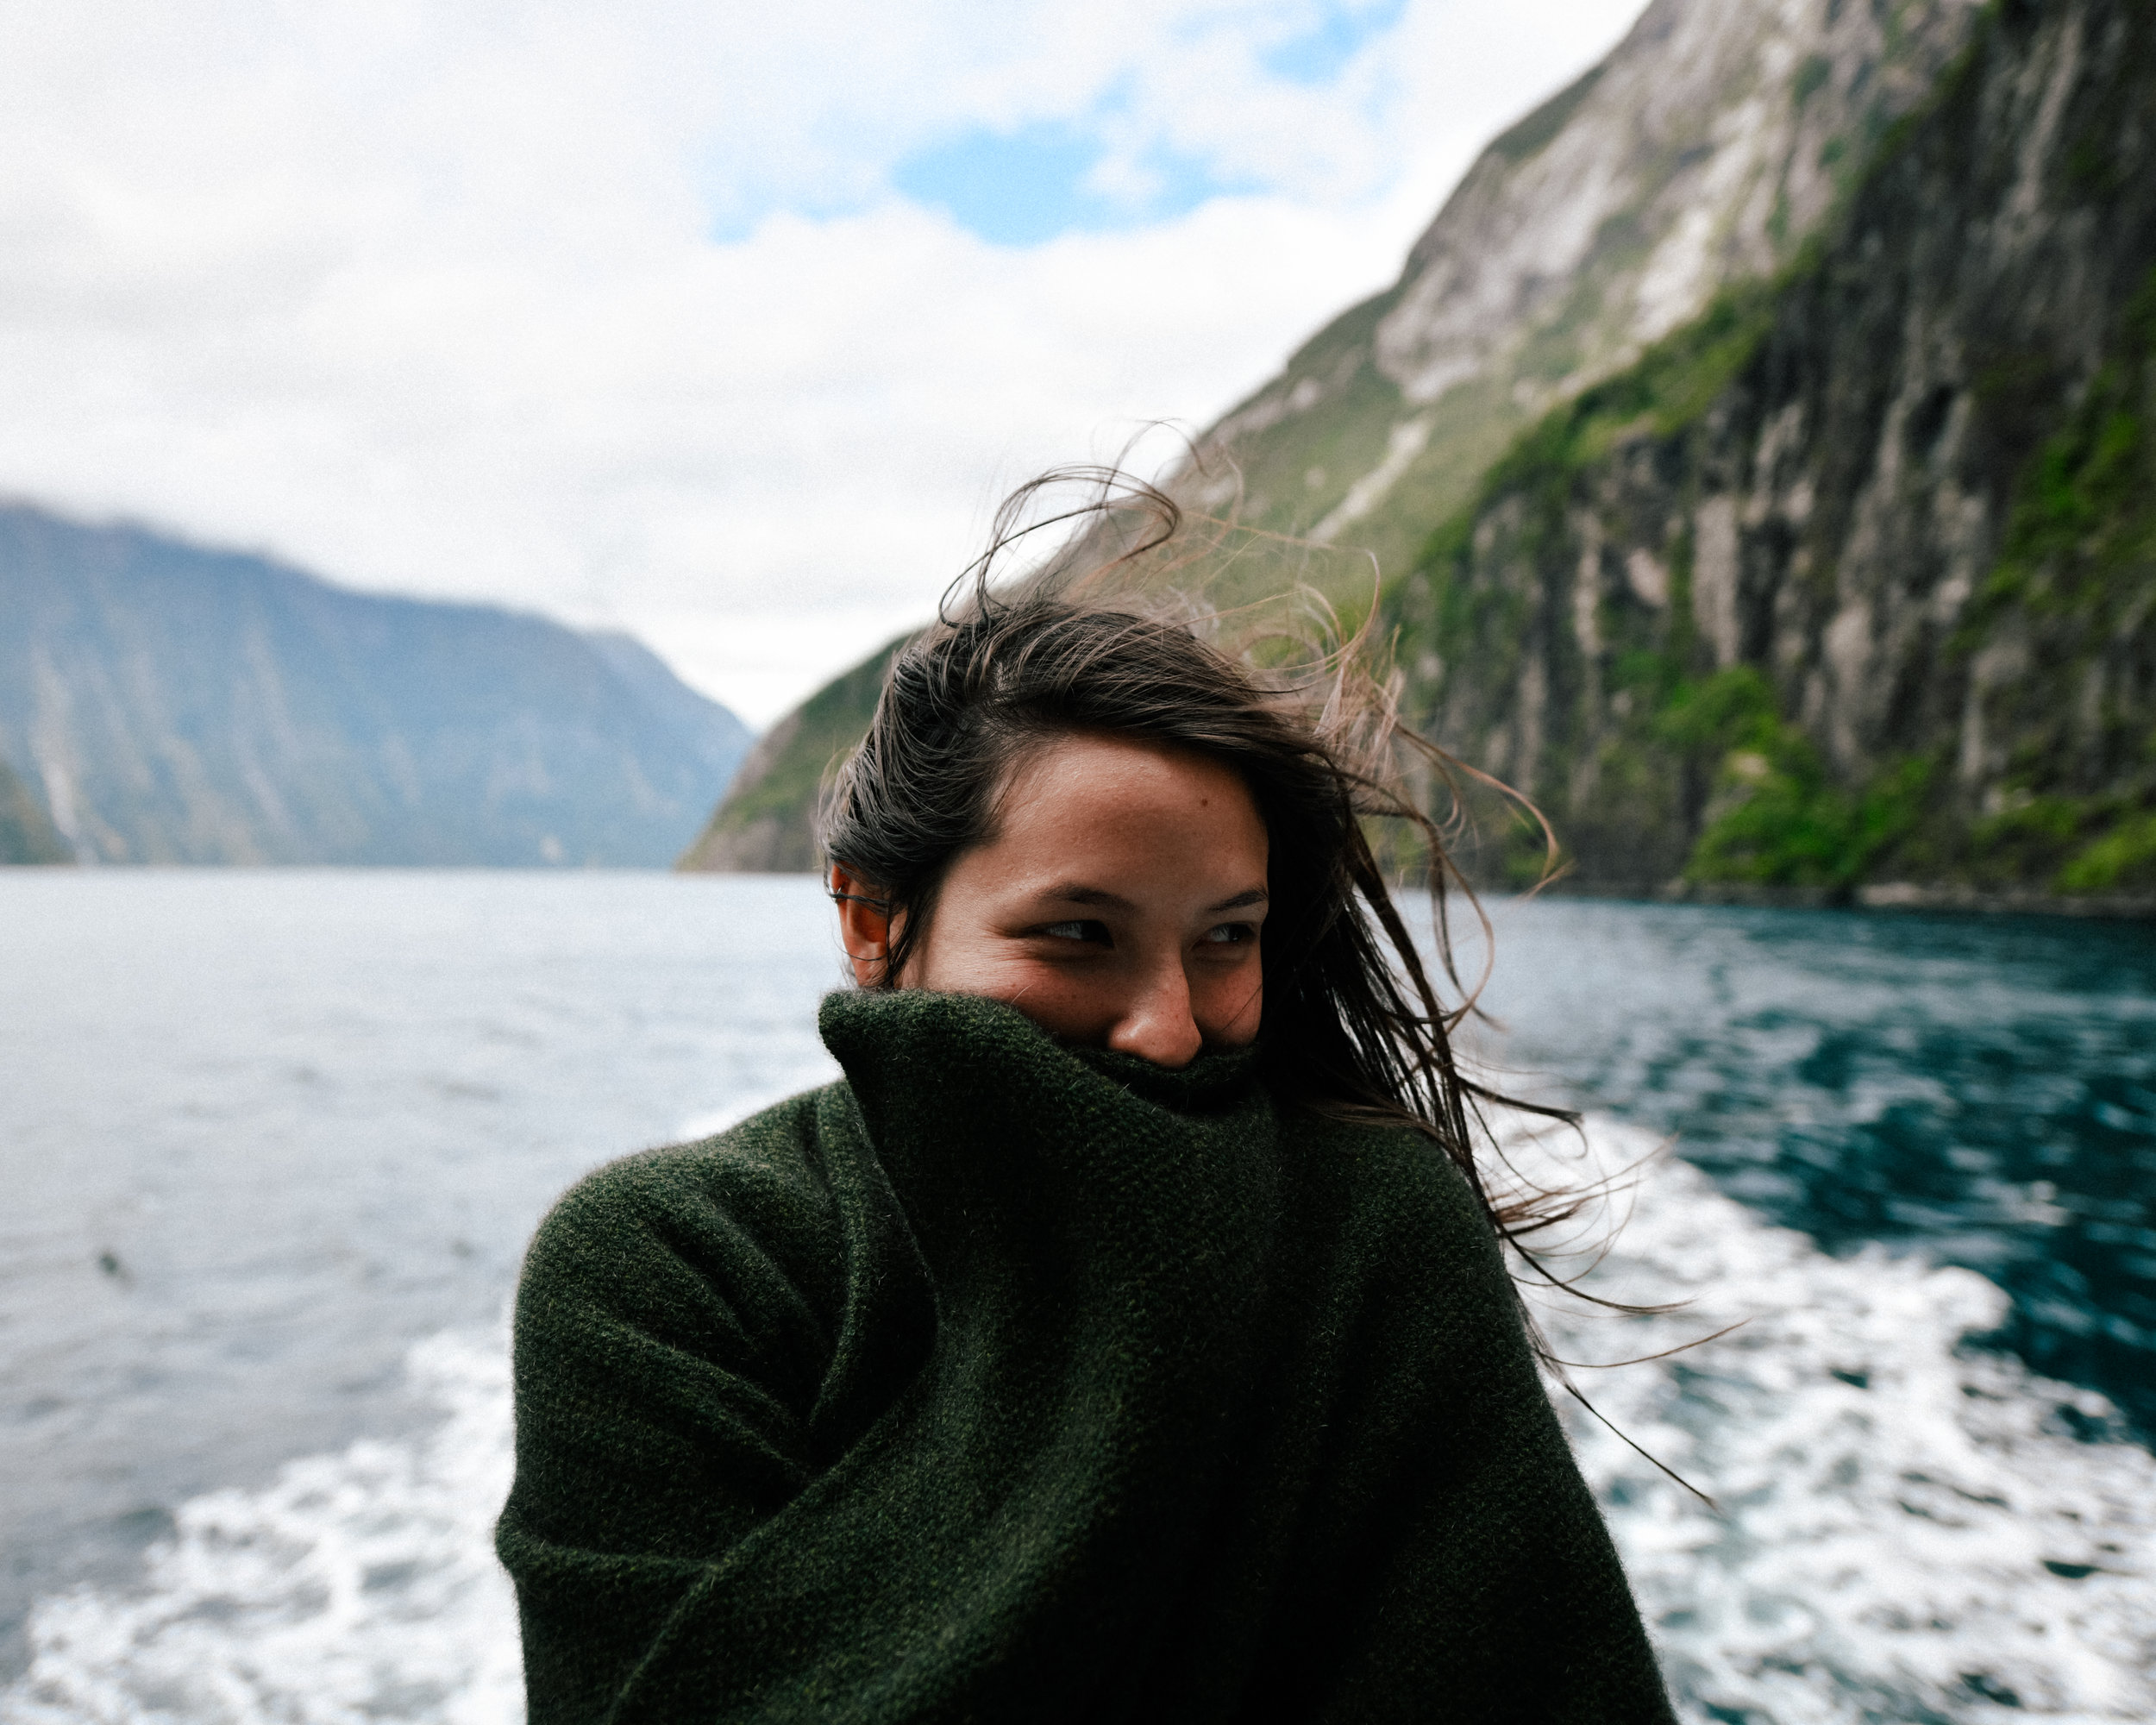 windy day in Milford Sound